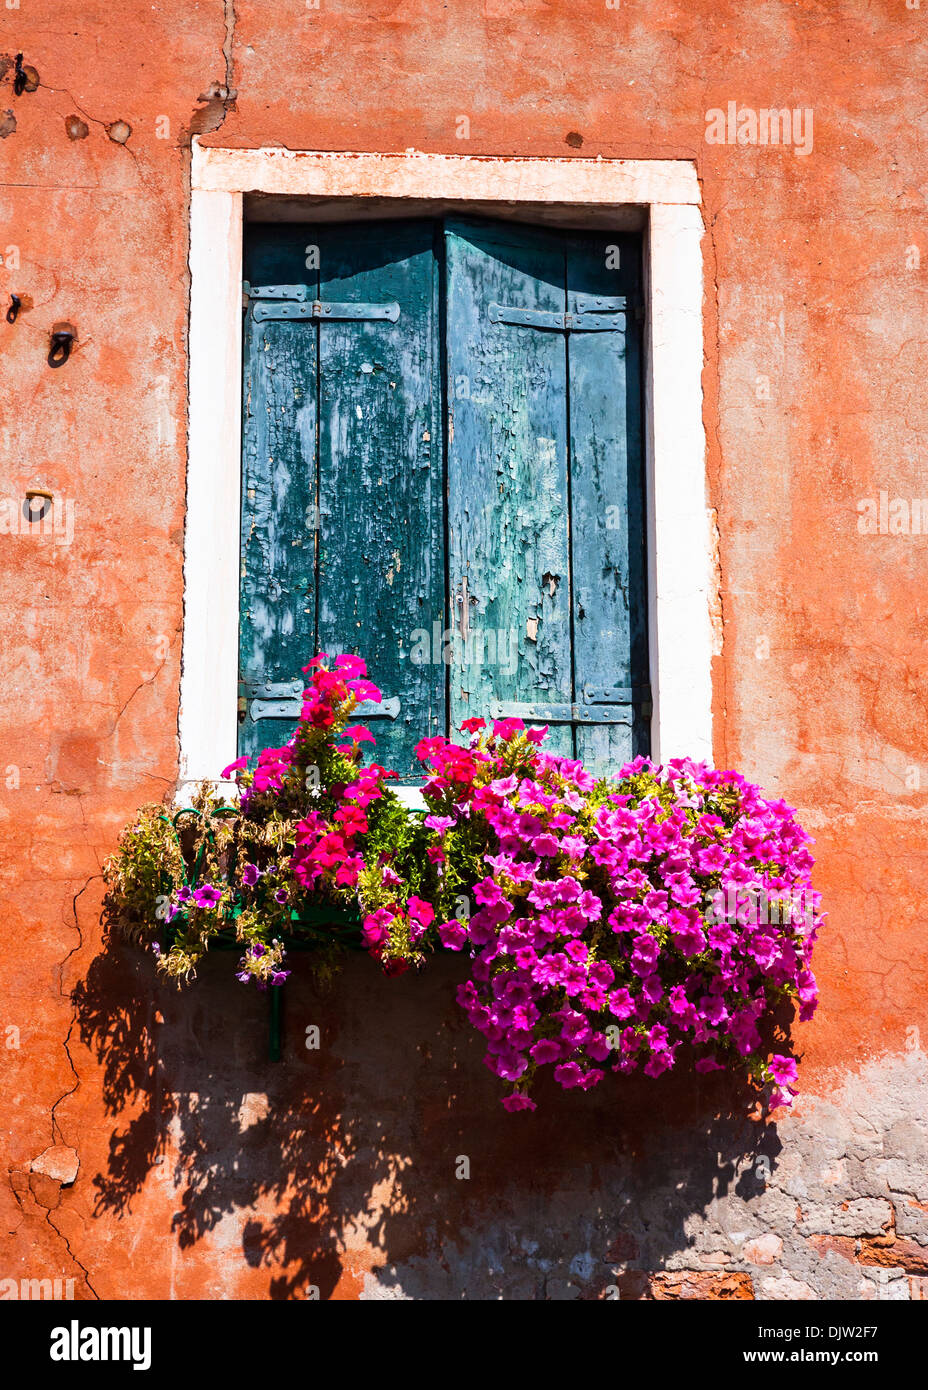 Window box full of trailing petunias, Murano, Venice, Italy. - Stock Image